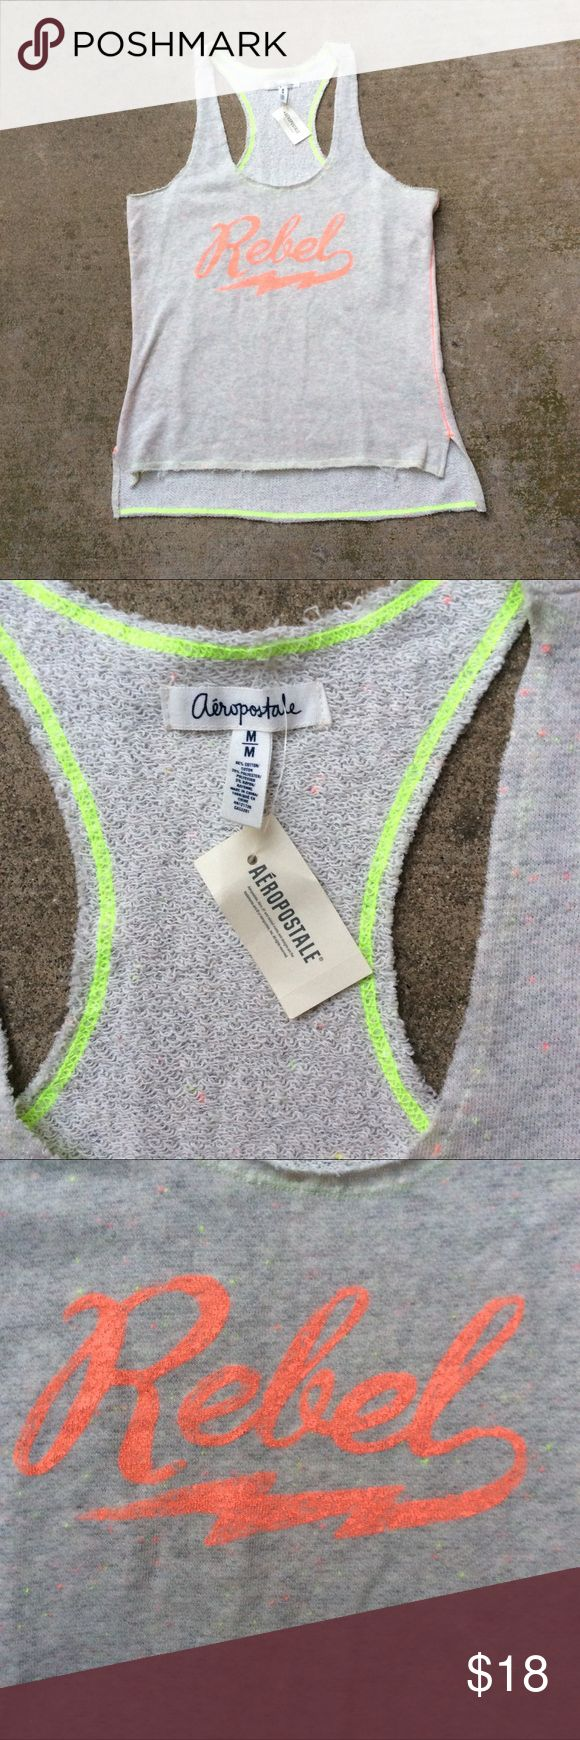 "Women's Aeropostale nwt rebel tank OVERVIEW  STYLE NUMBER: 9049  French terry material  Script graphic  Racerback style tank  Hi lo hemline  Size medium   Approx measurements laying flat:  Pit to pit 18.5""   New with tags Aeropostale Tops Tank Tops"